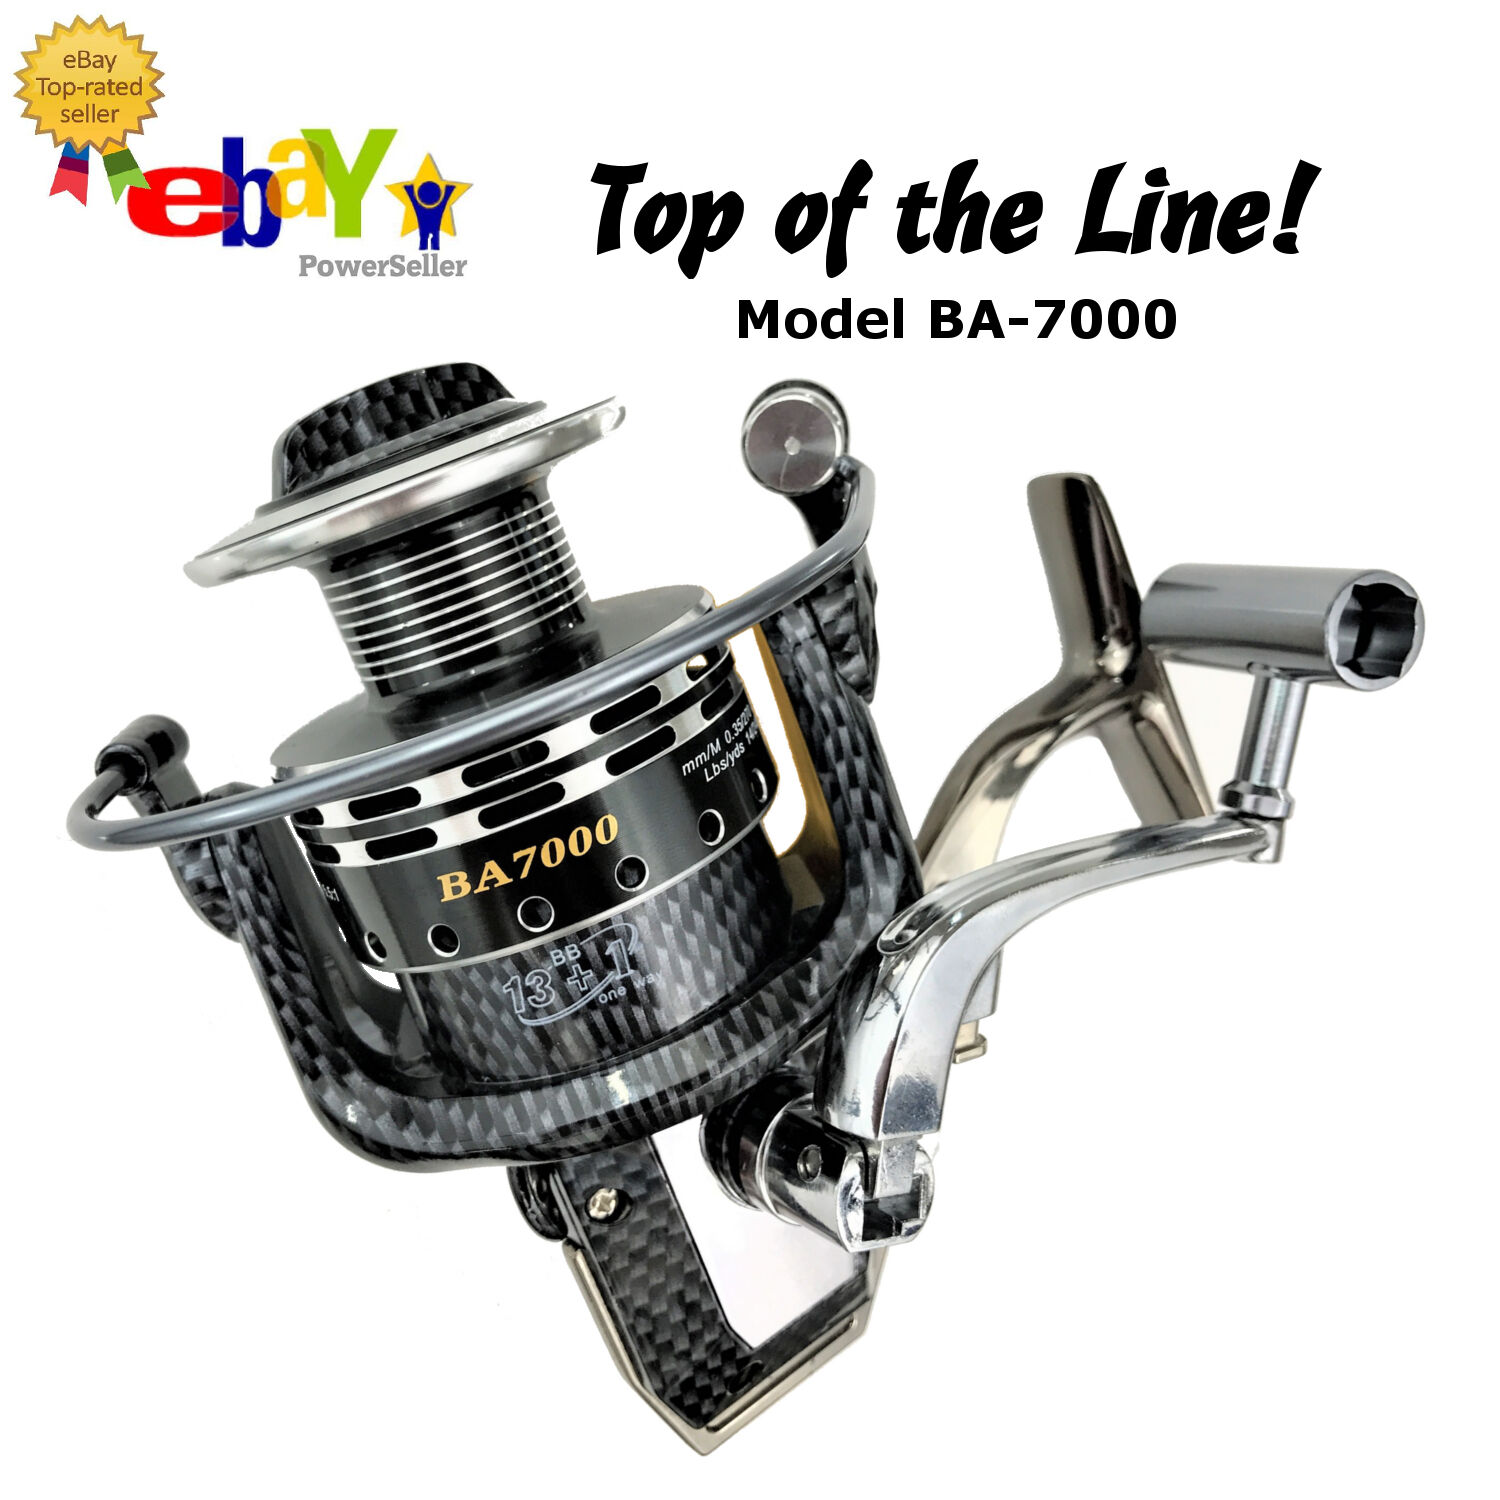 PREMIUM Spinning Fishing Reel 13+1 BB 4.7 1 Gear Ratio CNC Metal Spool Light Wei